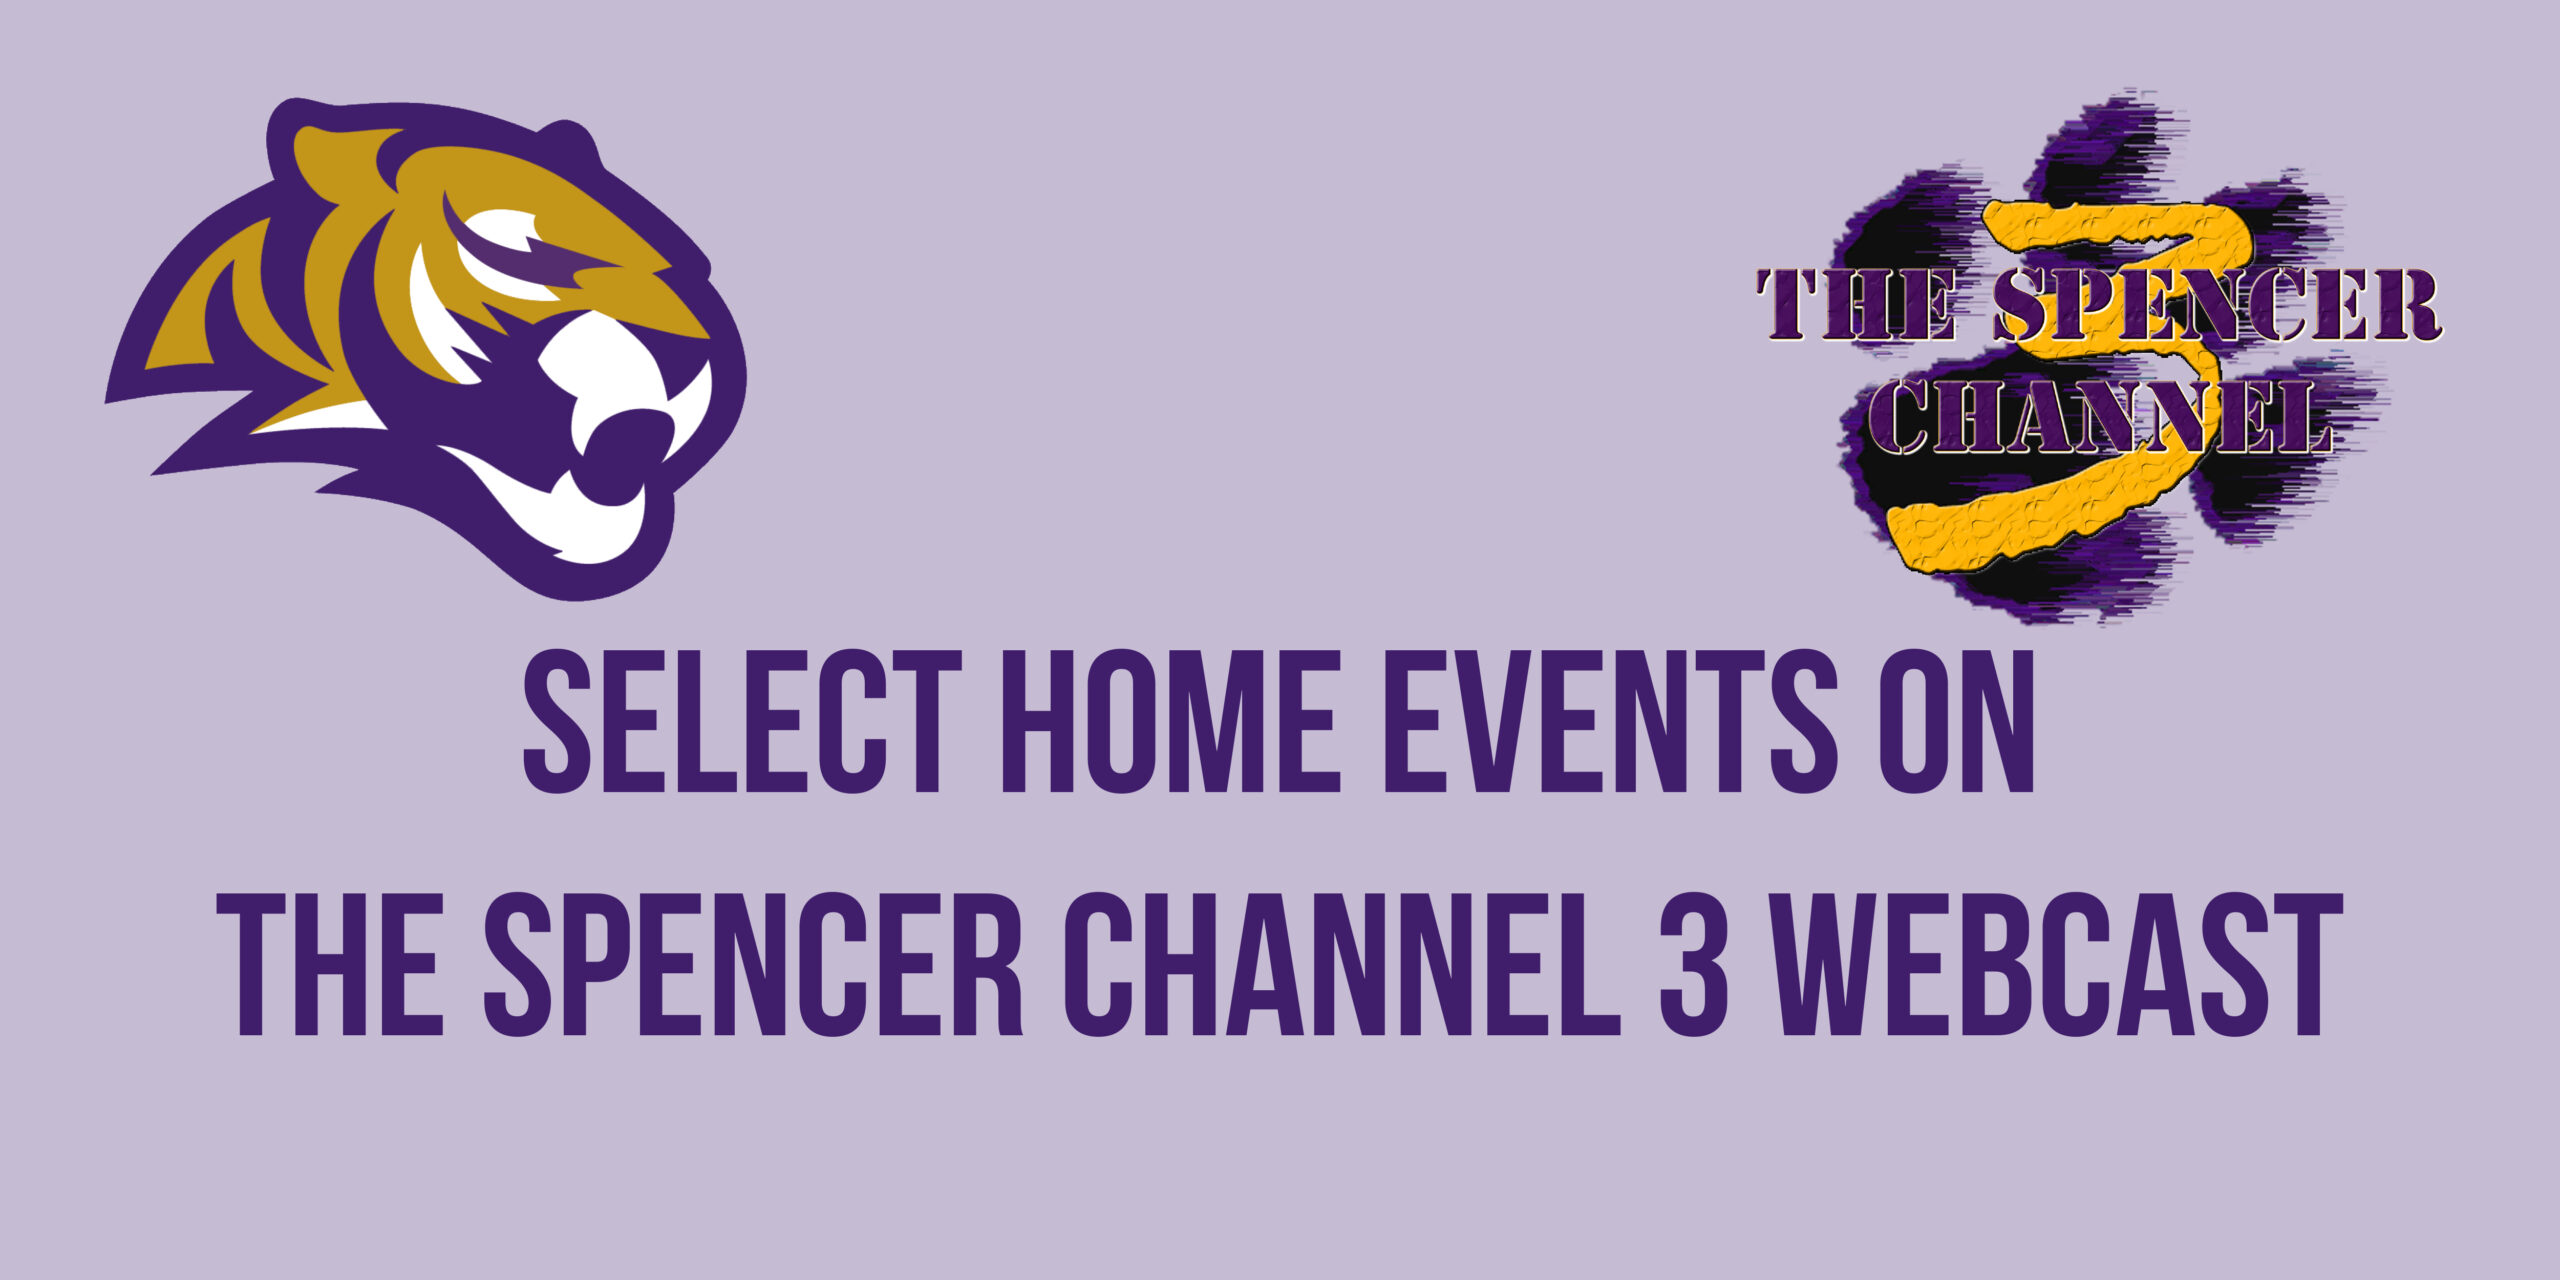 Select home events on The Spencer Channel 3 Webcast